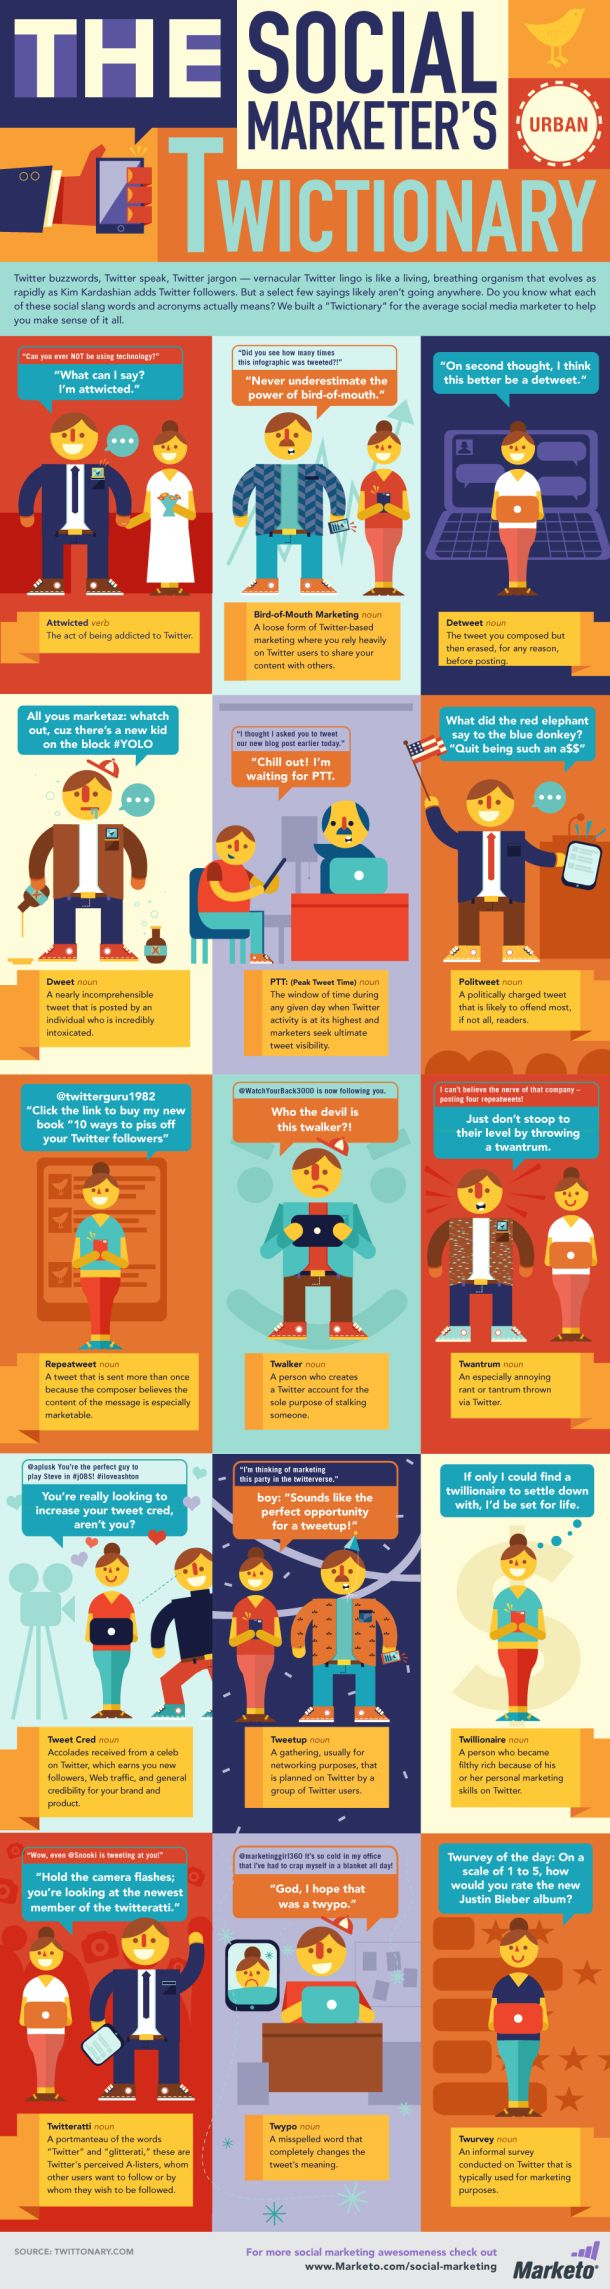 The Social Marketer's Twictionary [INFOGRAPHIC] #social#marketer